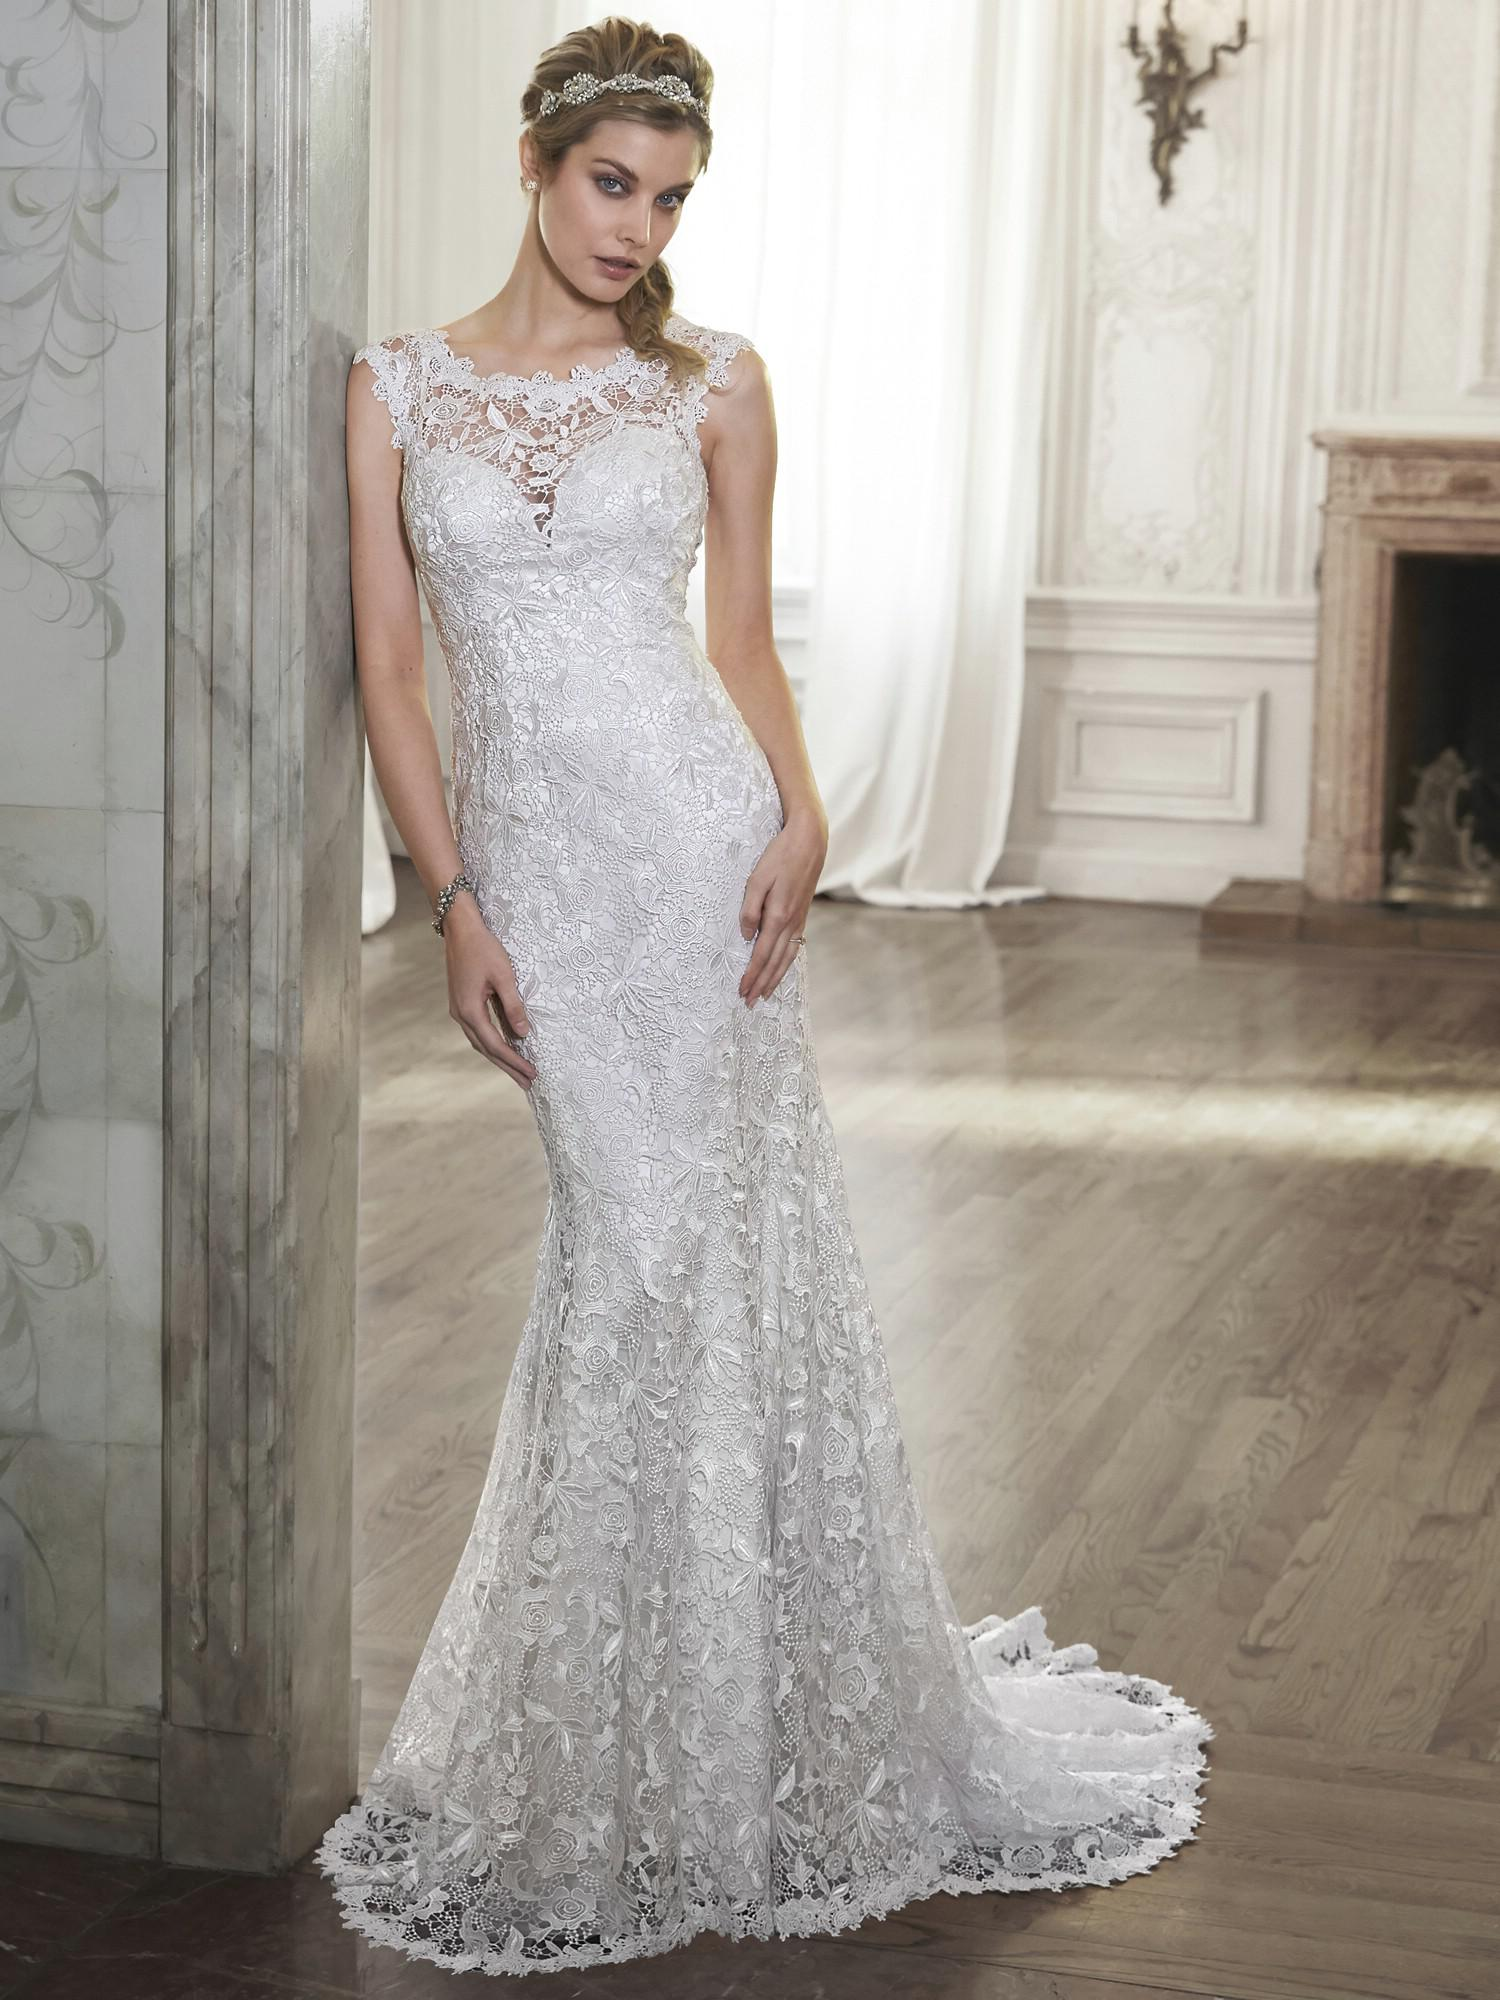 Maggie Sottero - ELLIS, Diamond White: 34